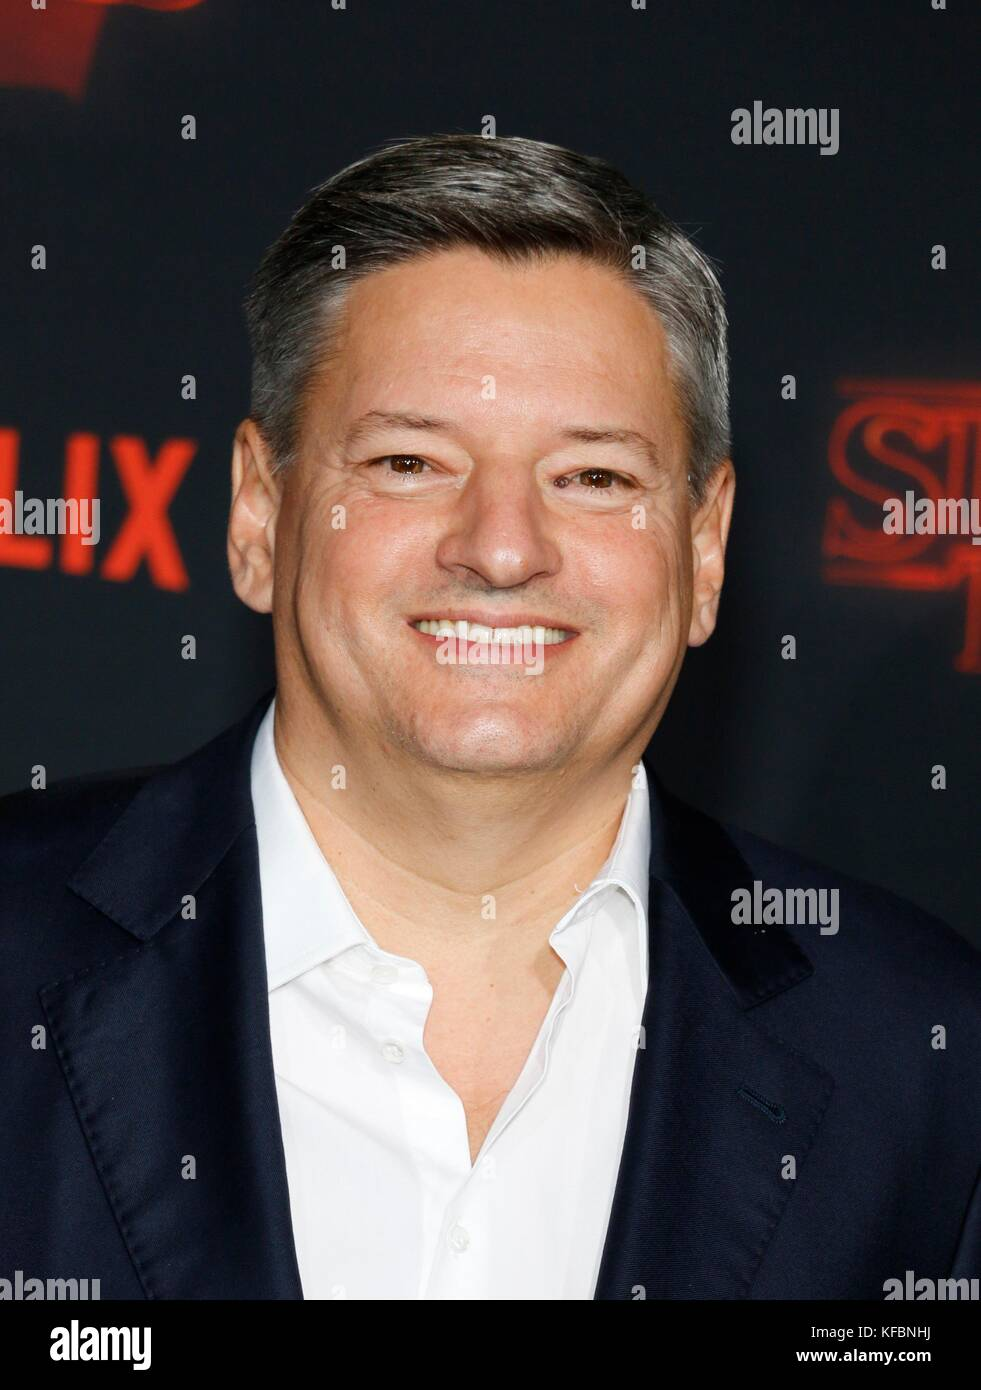 Los Angeles, CA, USA. 26th Oct, 2017. Ted Sarandos at arrivals for NETFLIX'S STRANGER THINGS 2 Premiere, Regency - Stock Image